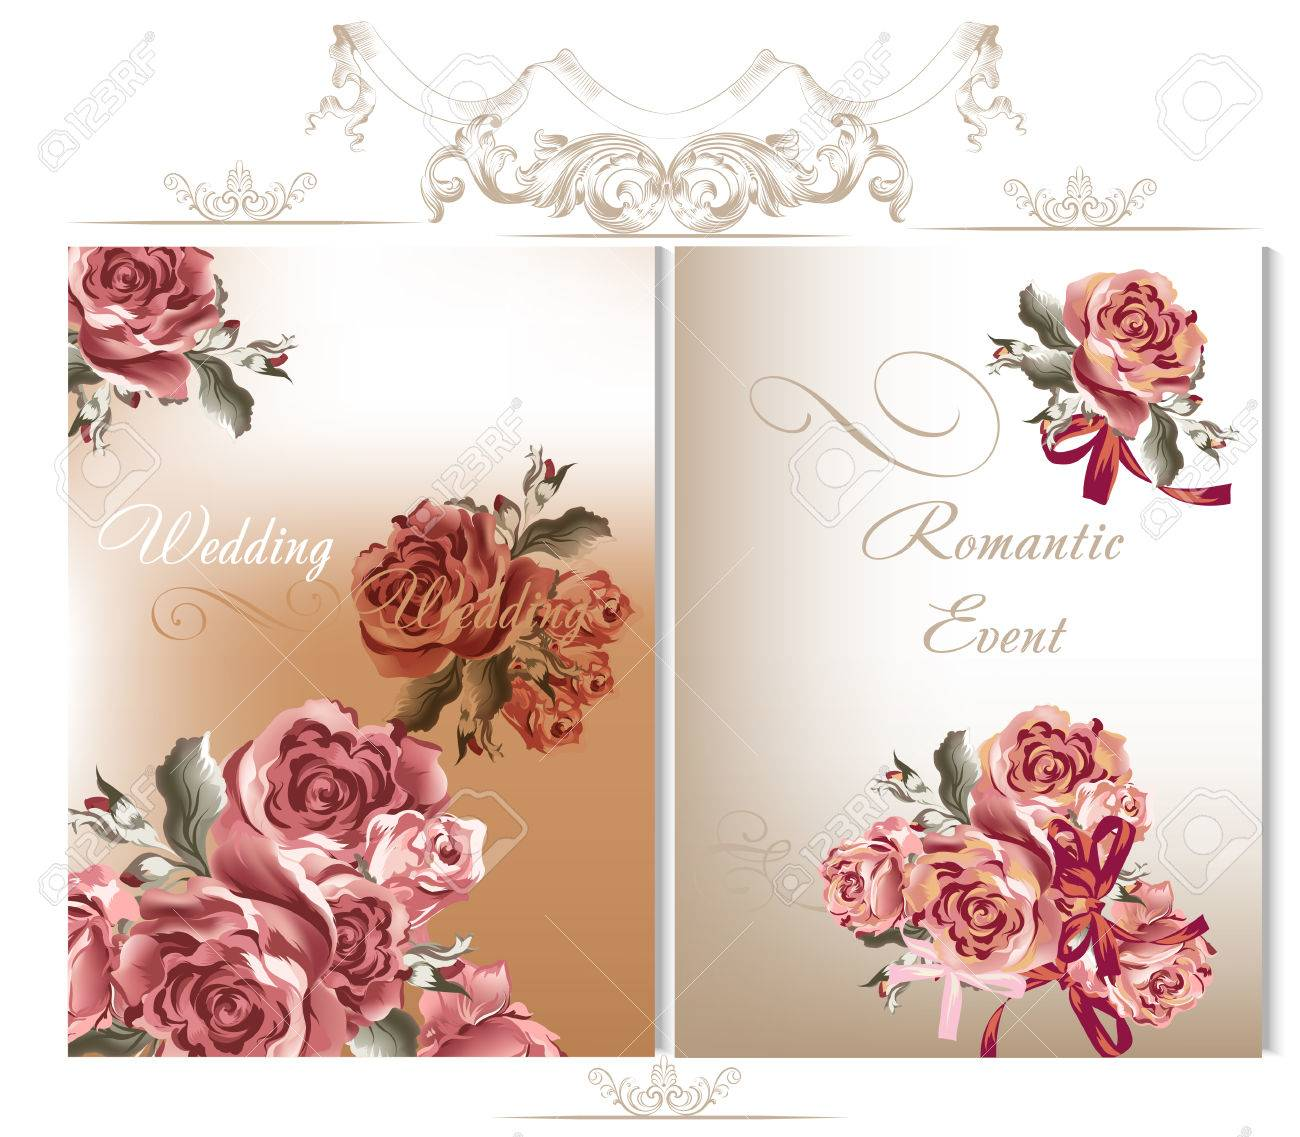 Vector Cute Wedding Cards With Roses In Vintage Style For Design Stock